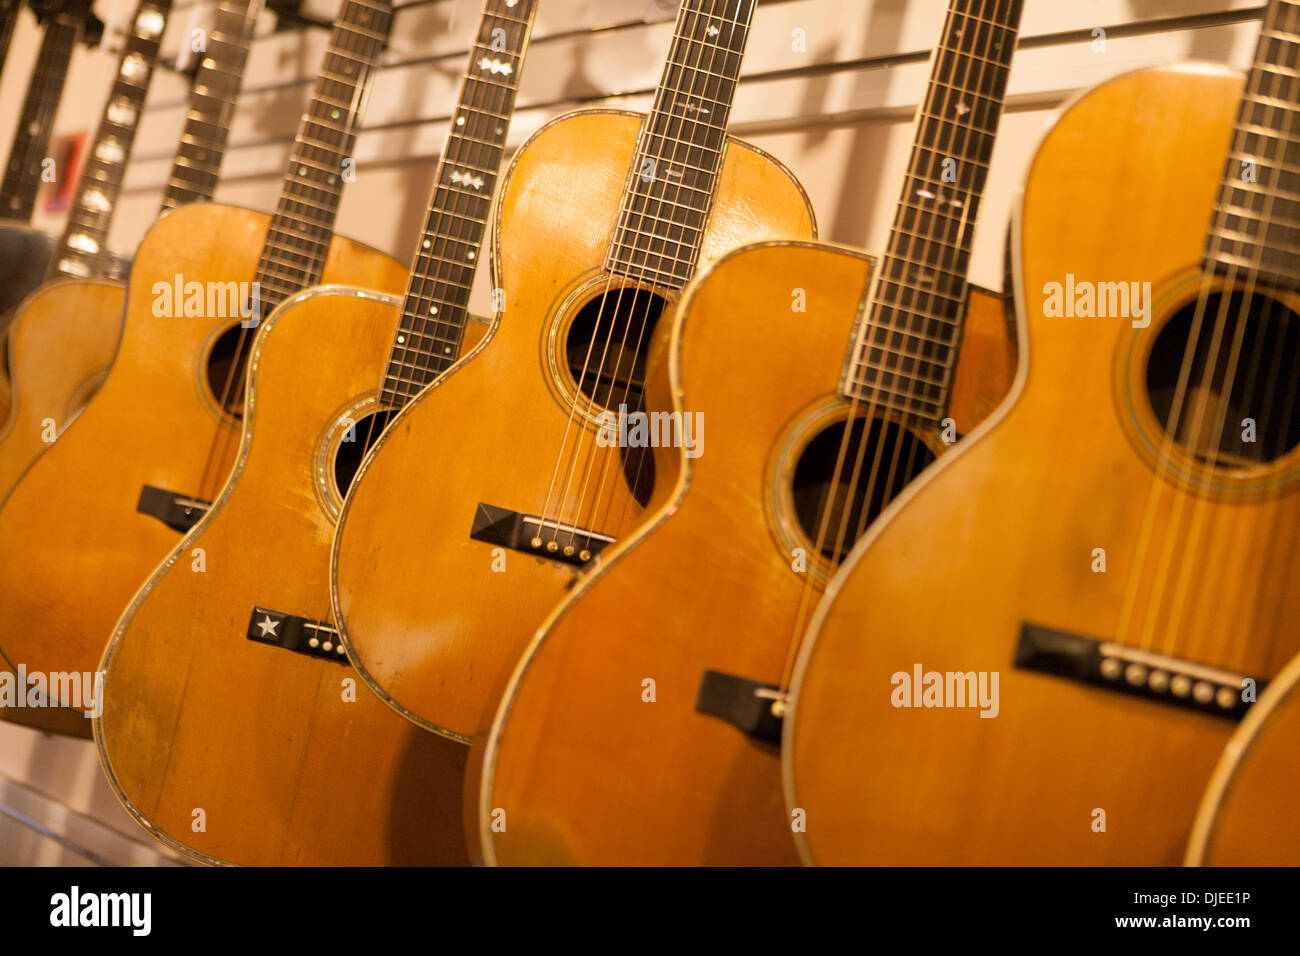 wooden acoustic guitars for sale in a music shop - Stock Image